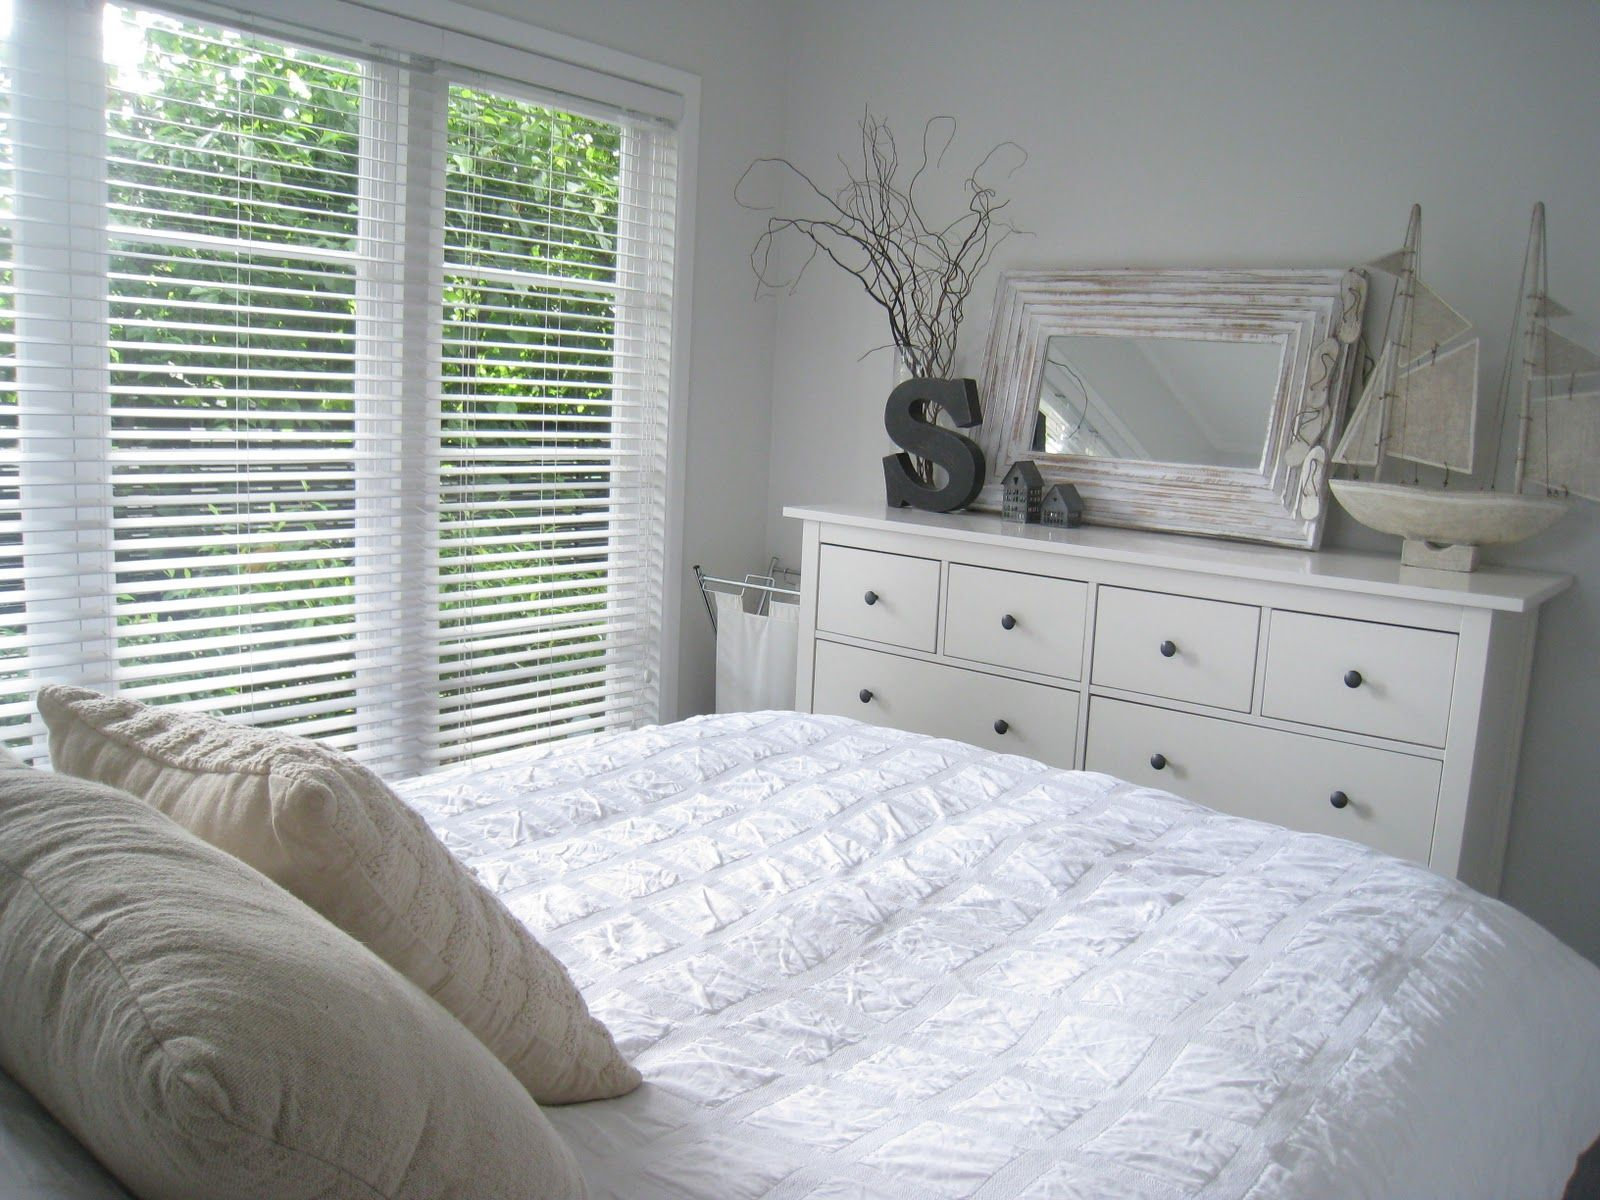 Ikea hemnes bed white google search